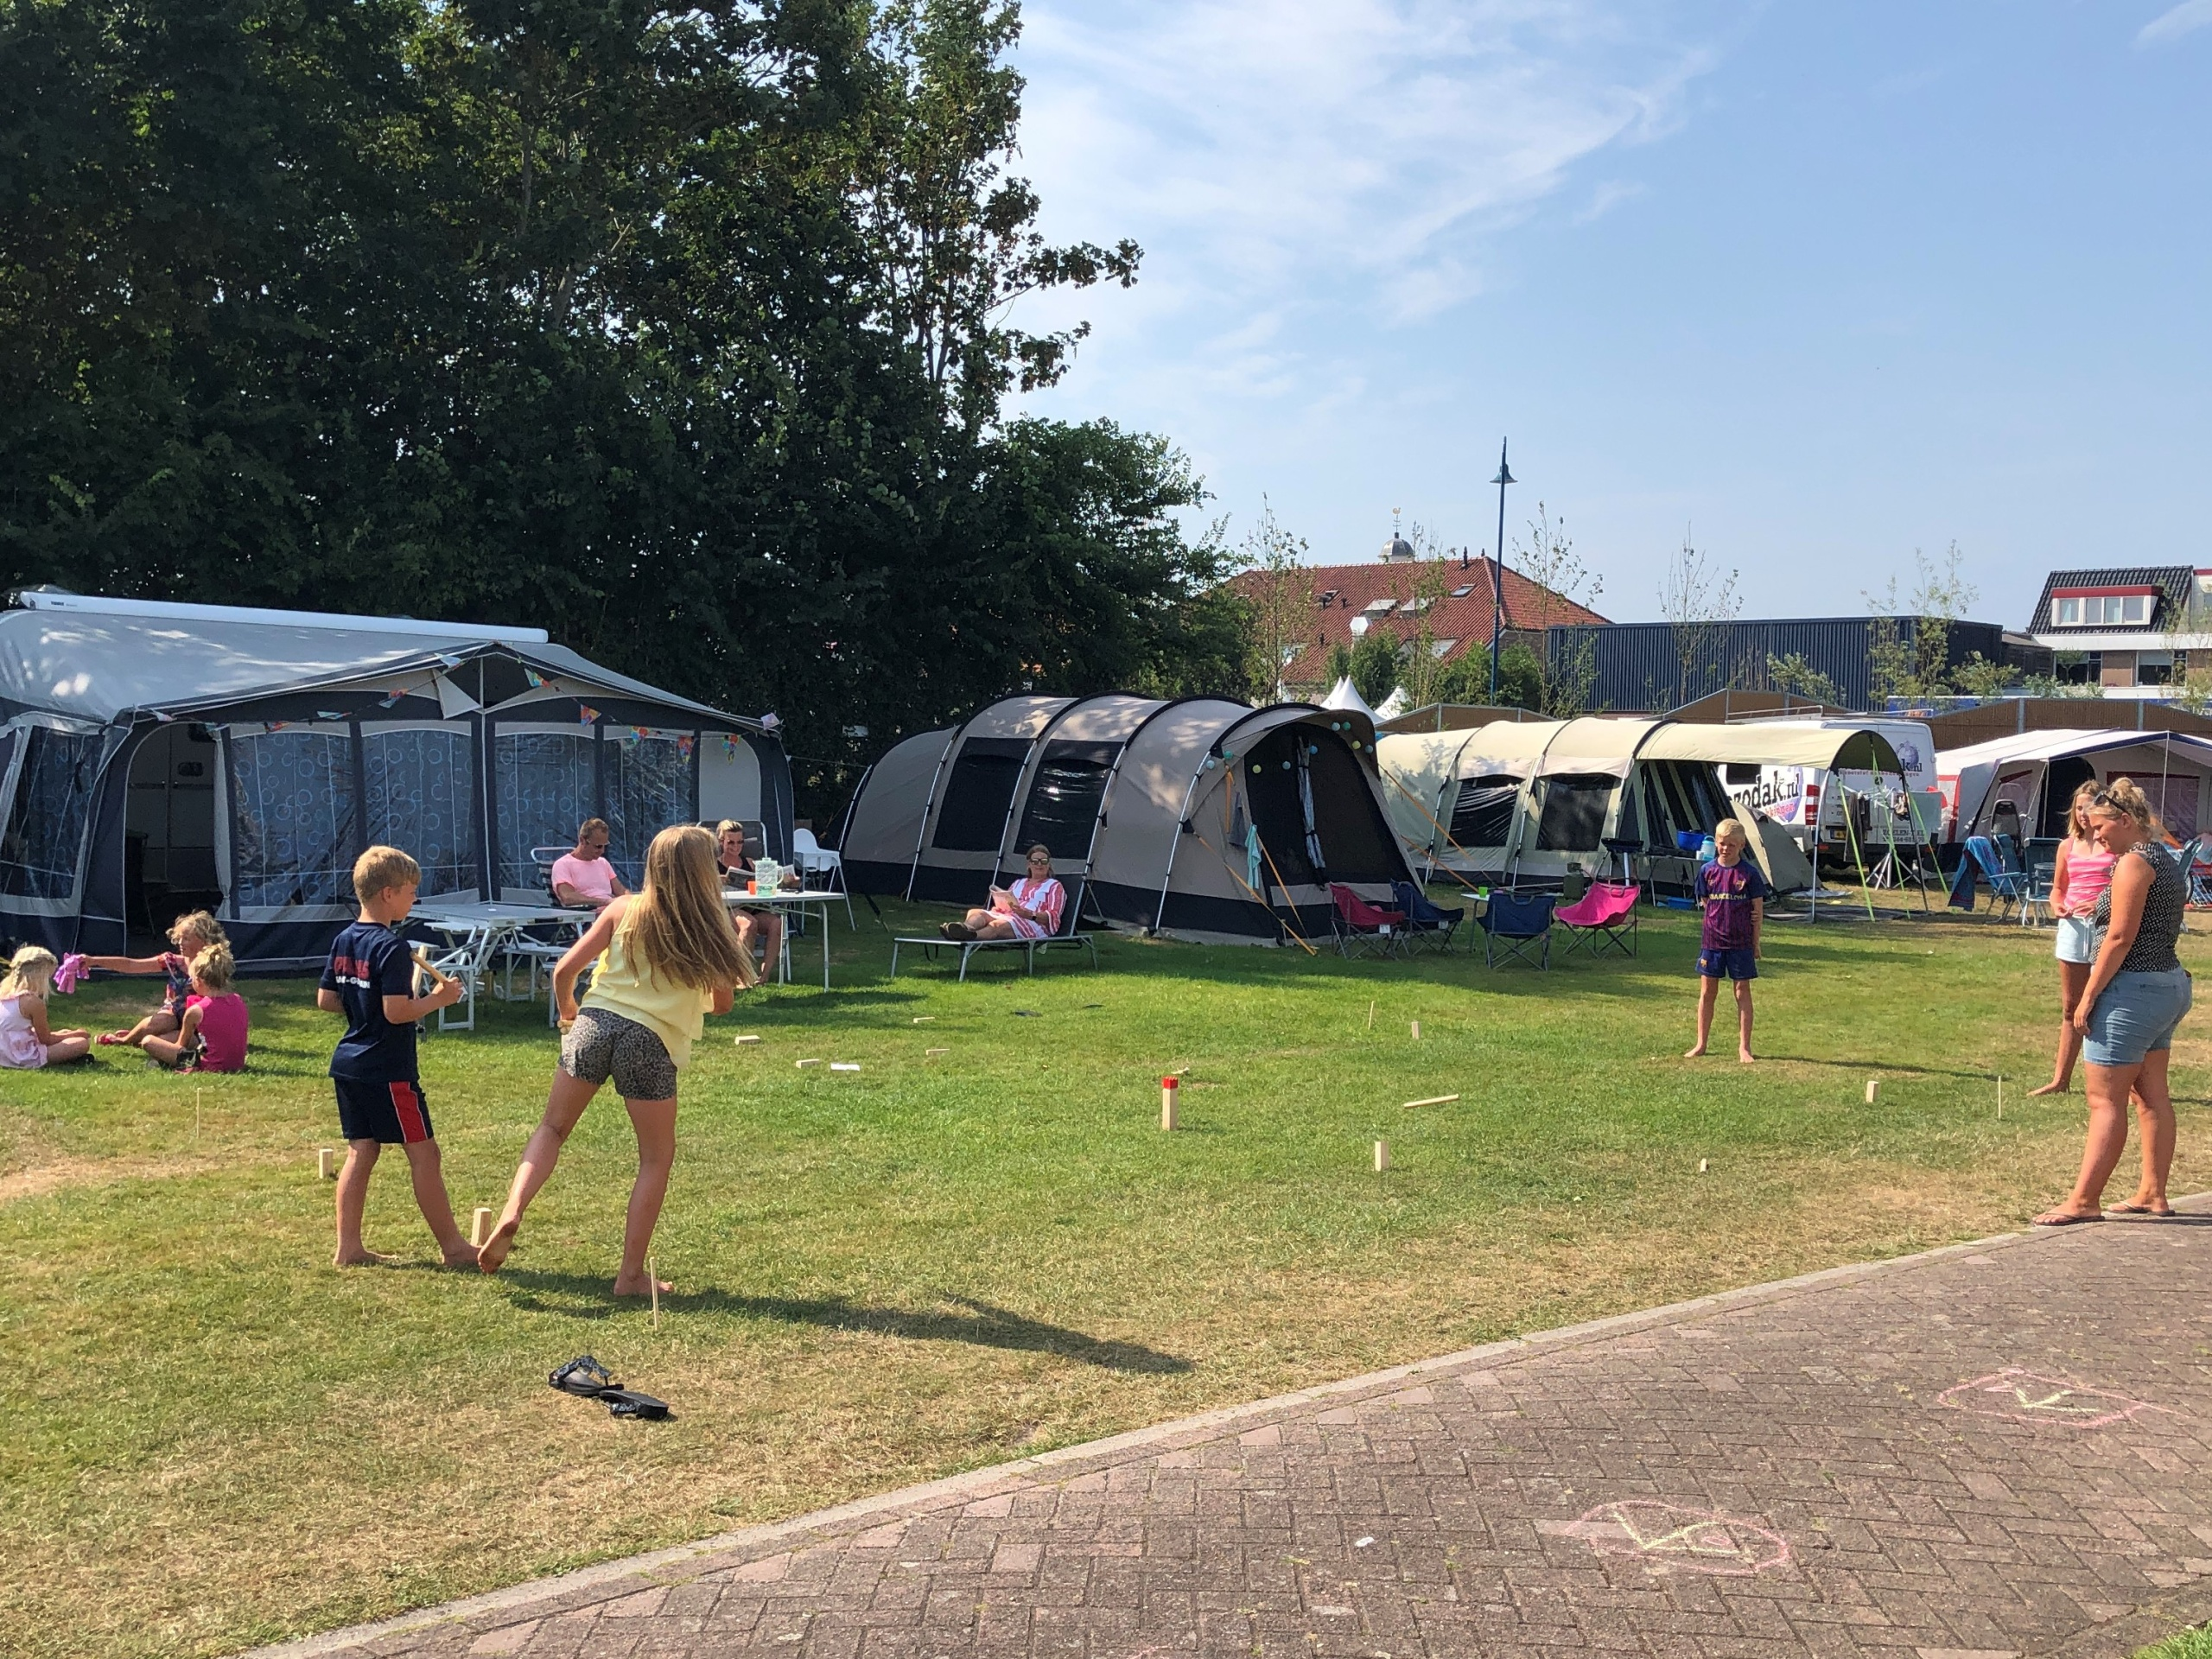 Lovely camping within walking distance of the center of De Koog.